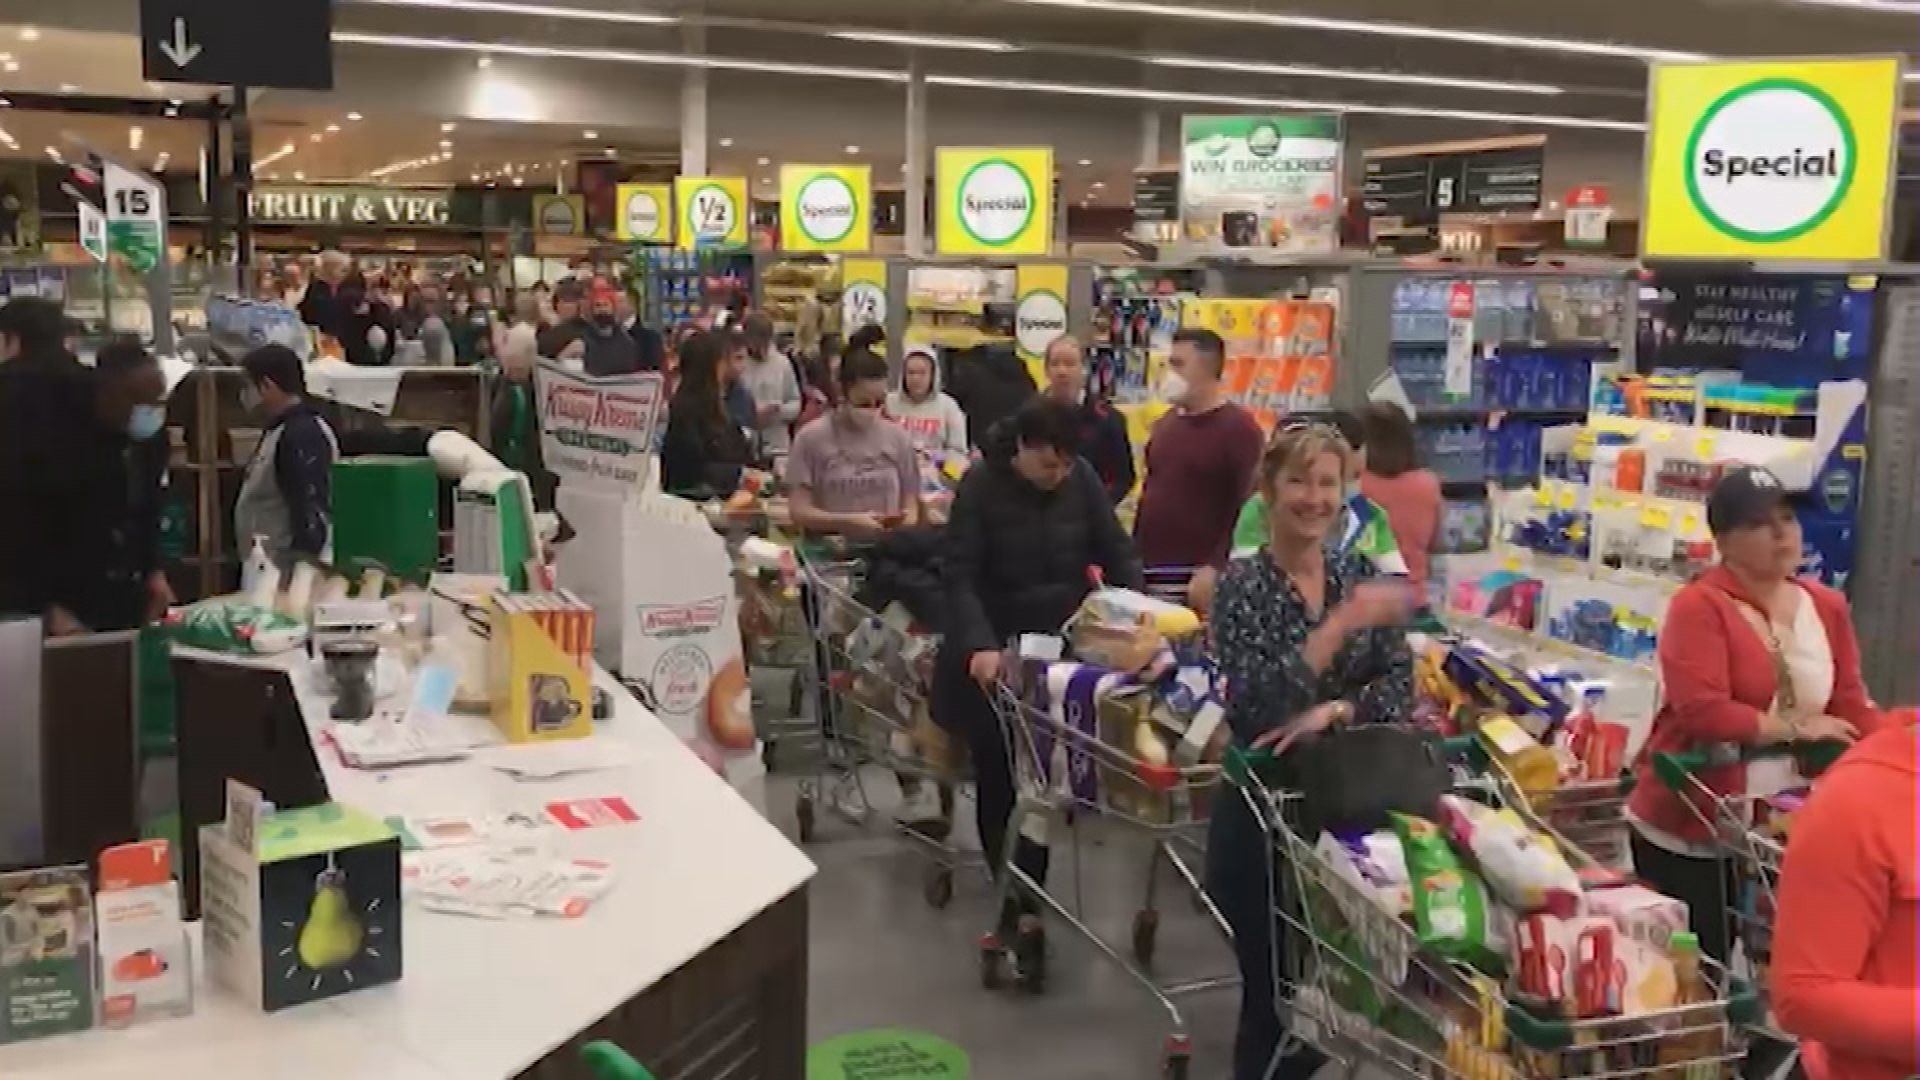 Supermarkets across Canberra and the ACT are packed with people ahead of the lockdown.